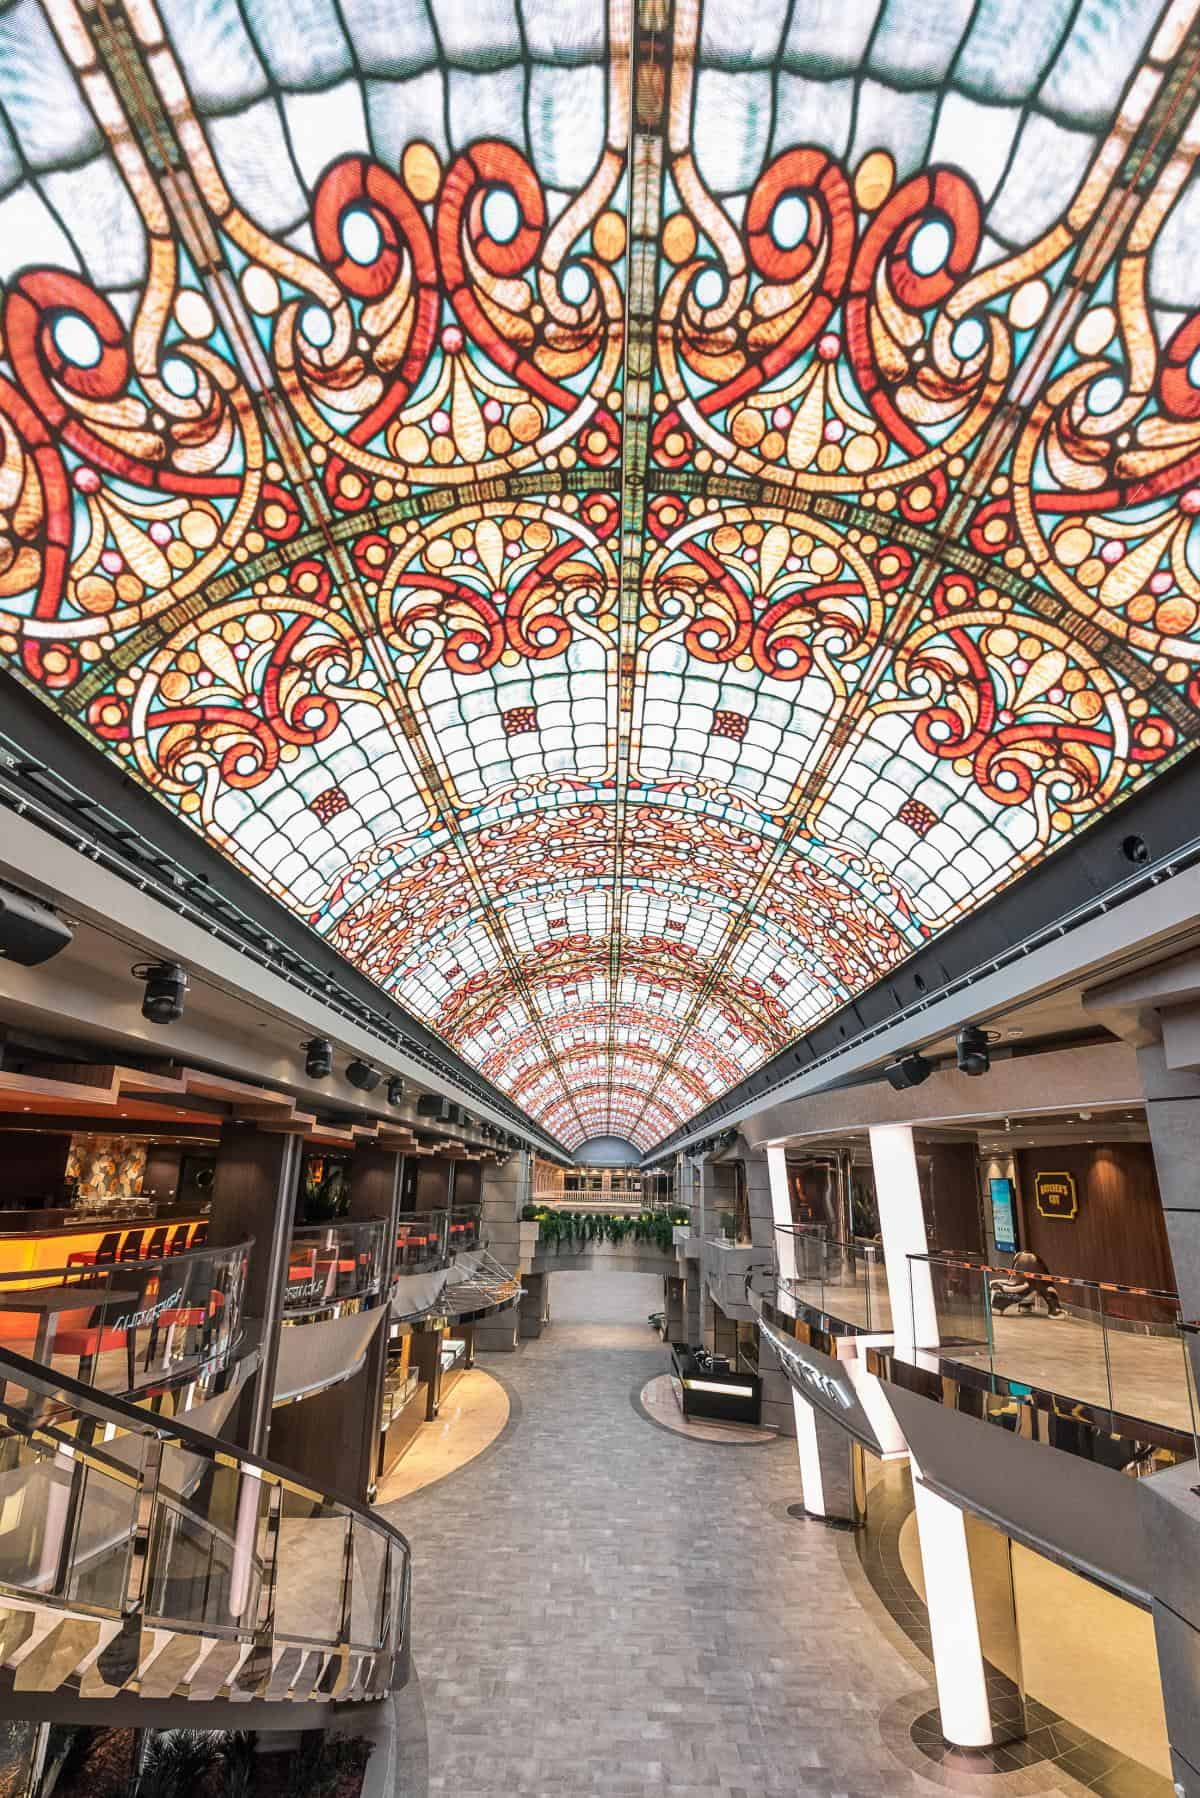 The MSC Bellissimo will  feature an iconic Mediterranean-style promenade with an 80-metre LED screen. The shopping gallery with over 200 brands